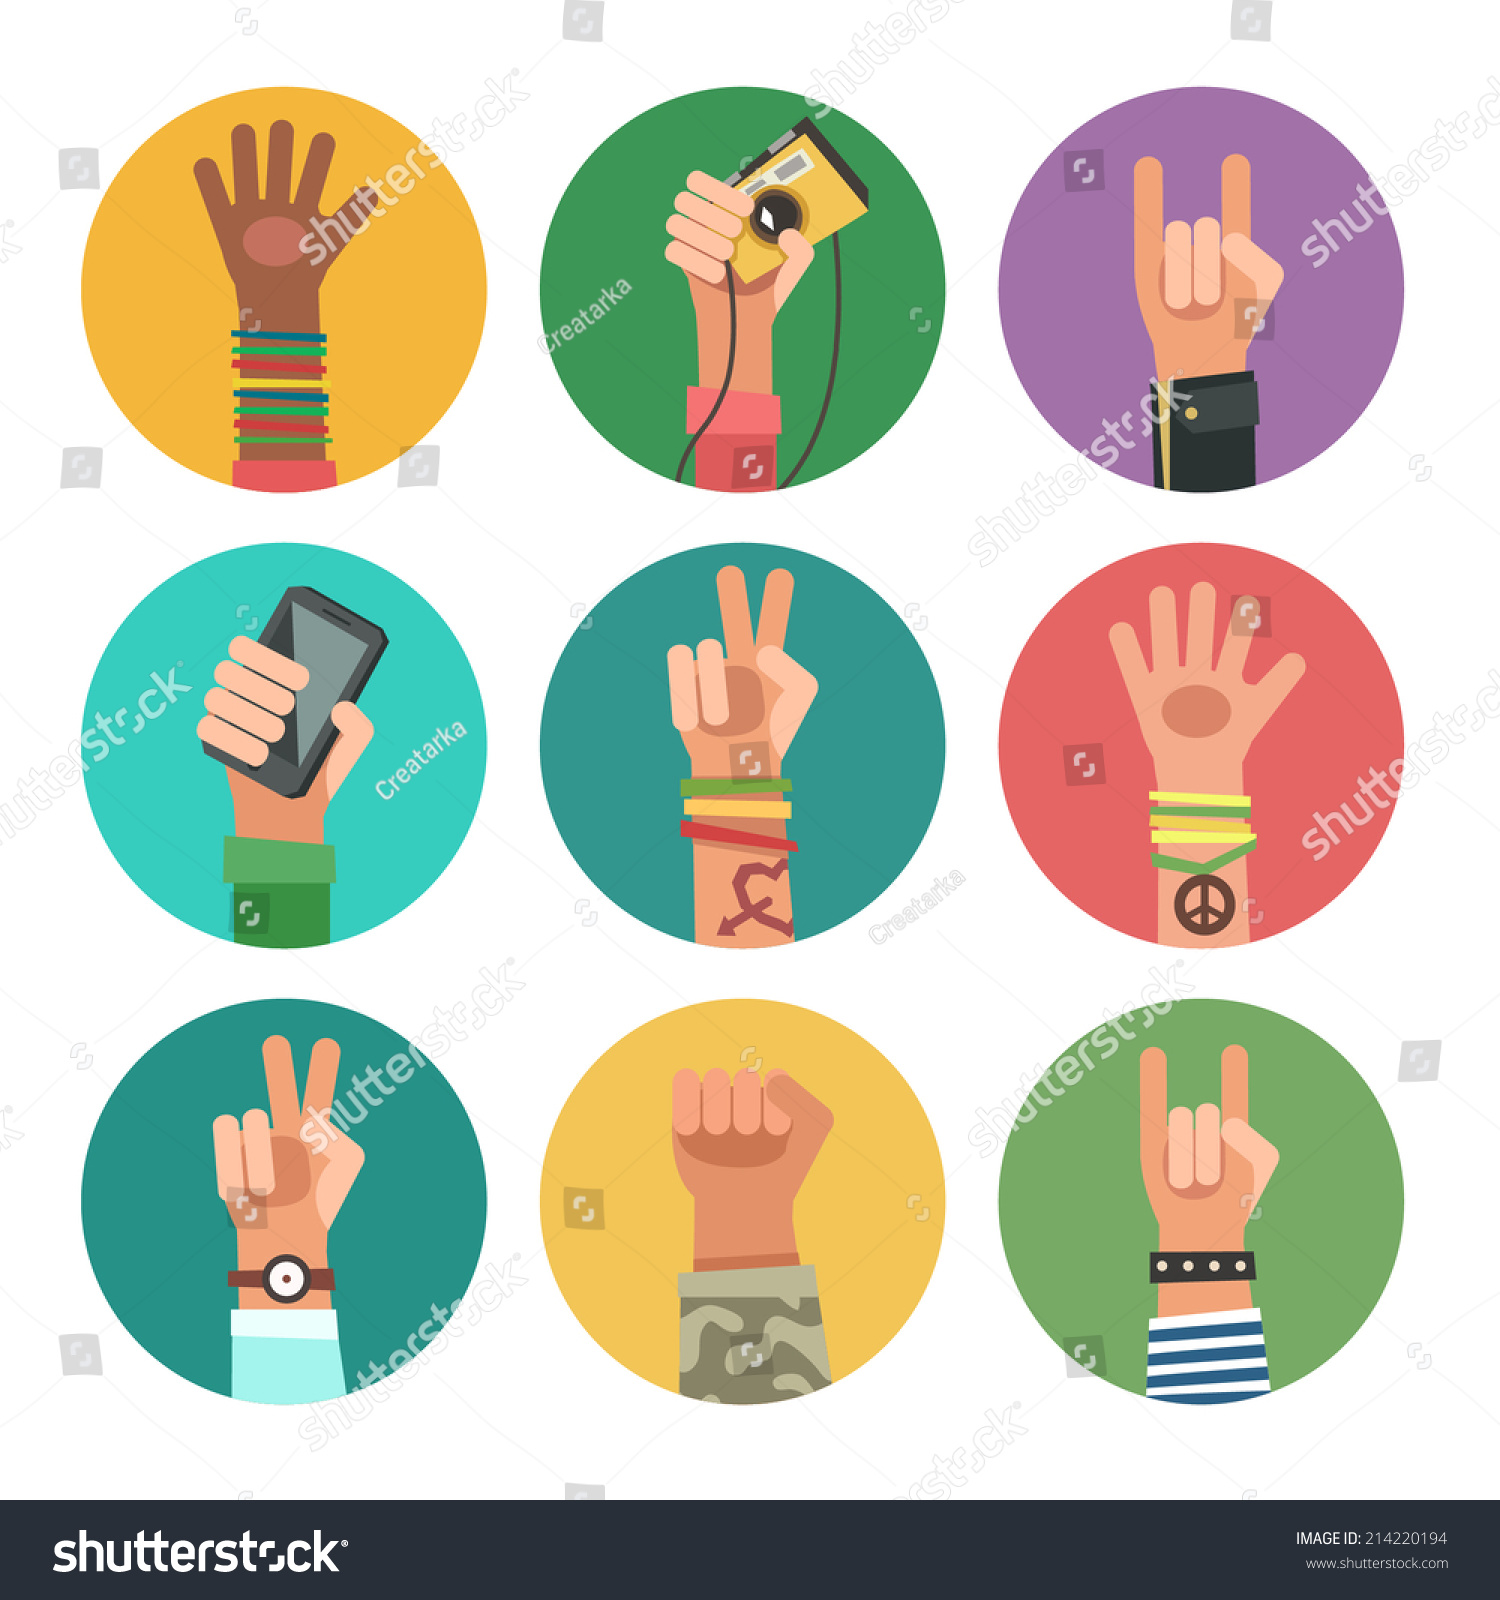 Flat Design Icons Collection Hands Different Stock Vector